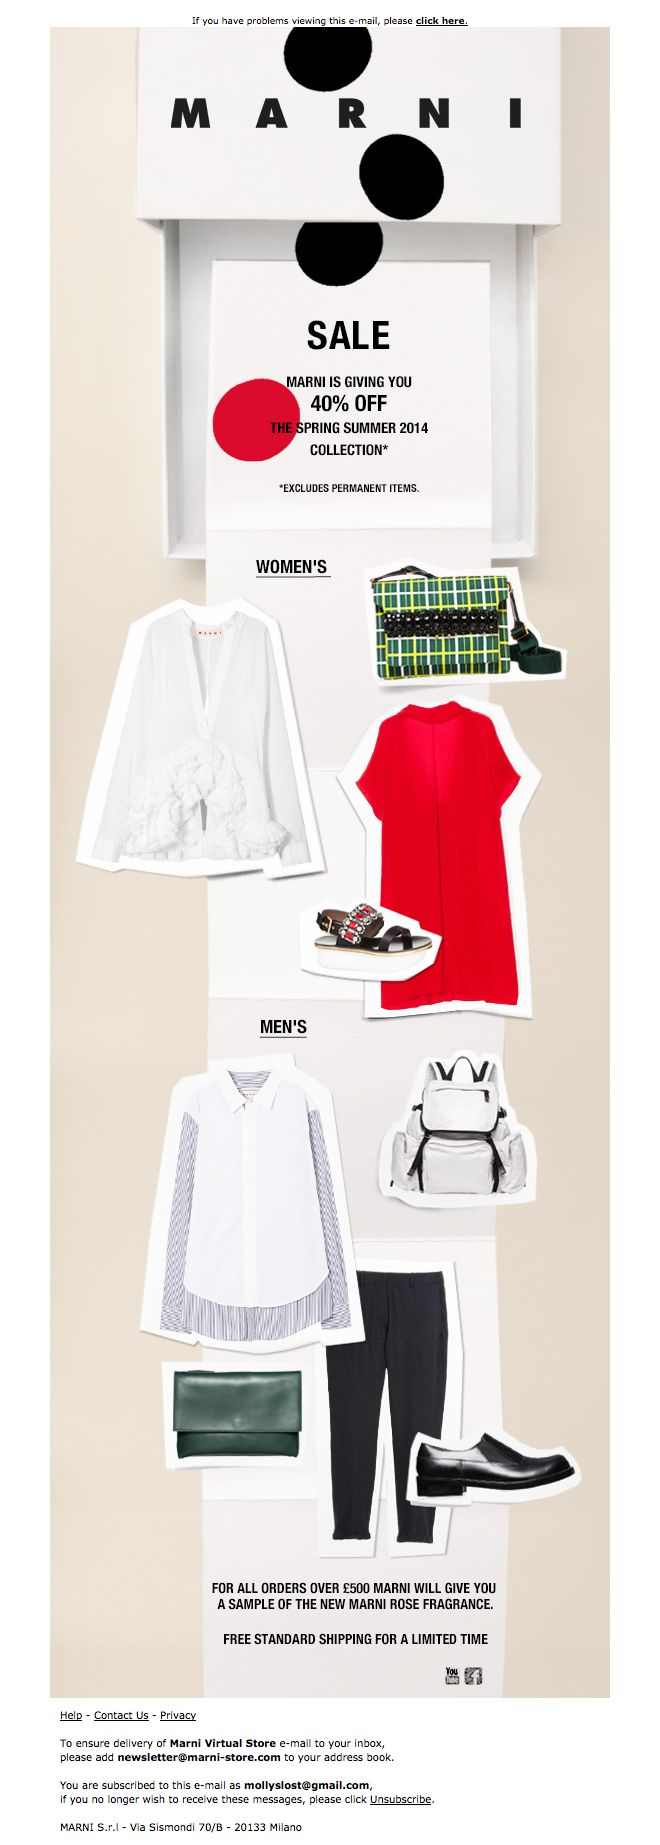 paperdoll #web #digital #marni